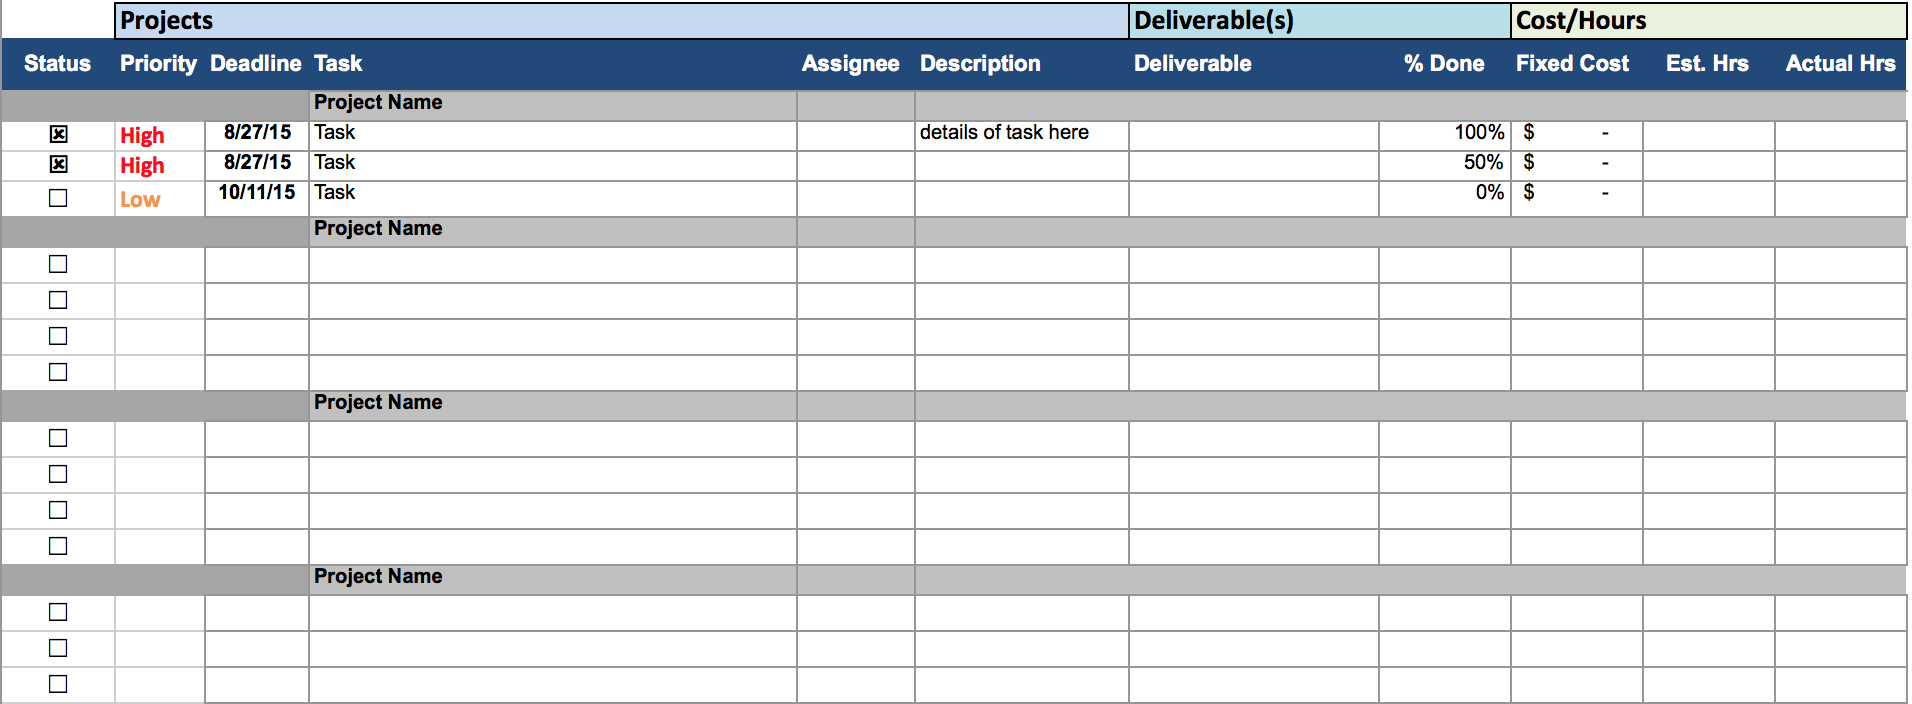 Letters of Project Spreadsheet Template Excel intended for Project Spreadsheet Template Excel Sheet